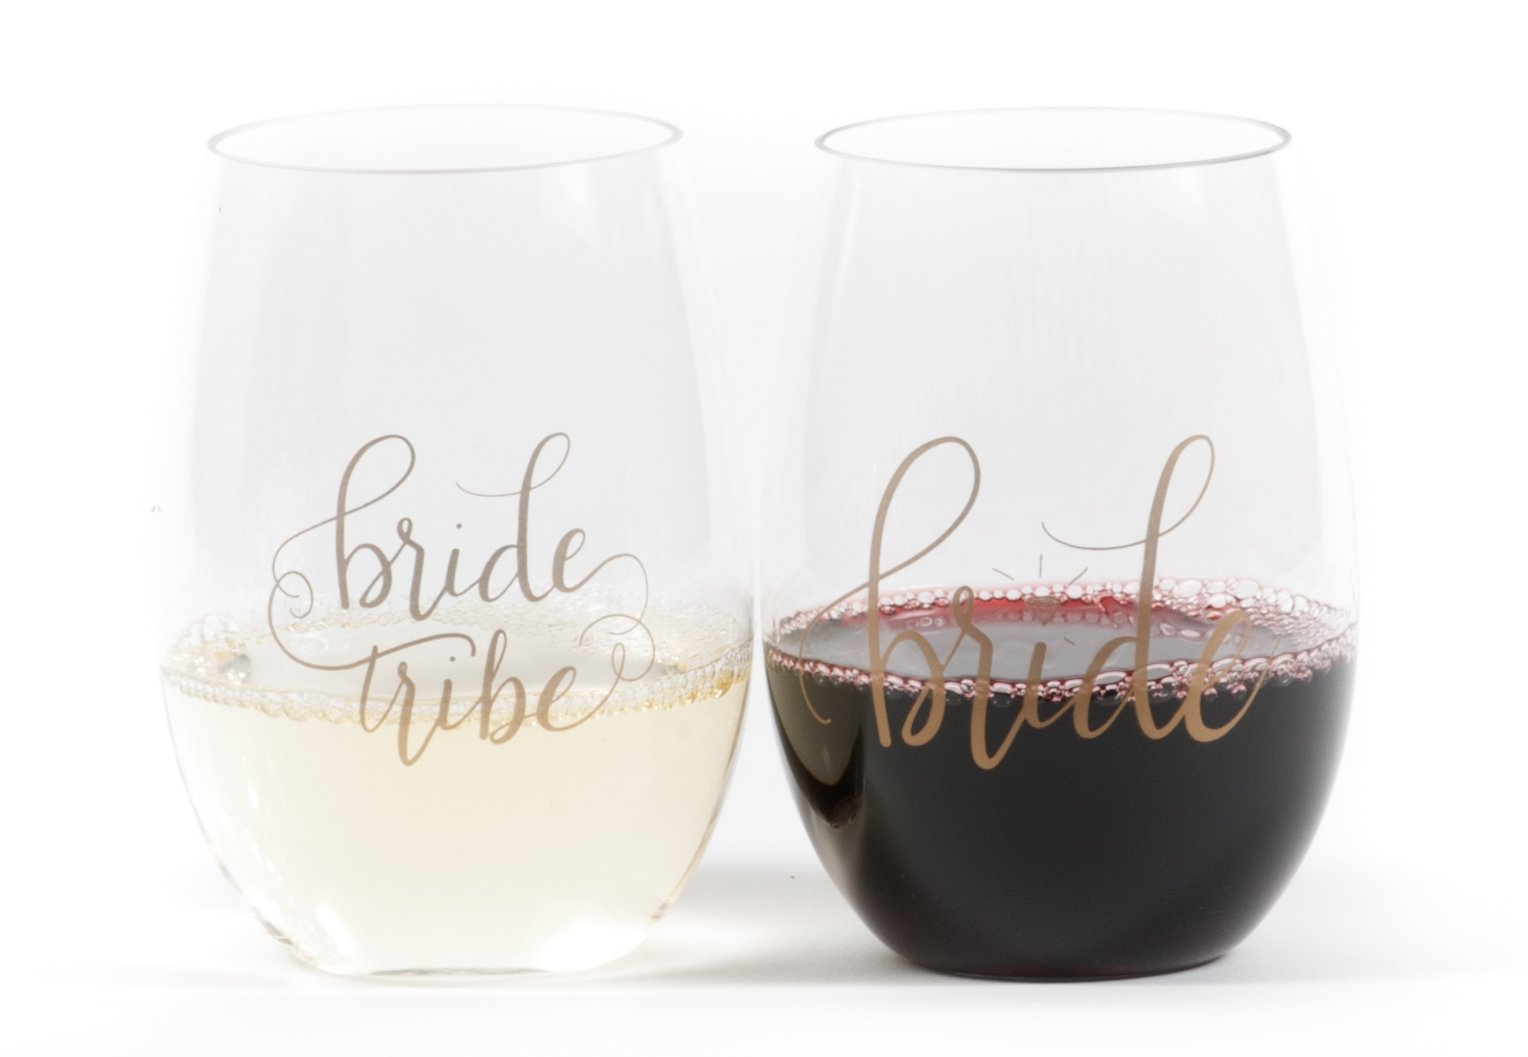 Bride Tribe Durable Plastic Stemless Wine Glasses for Bachelorette Parties, Weddings and Bridal Showers (8 PIECES)